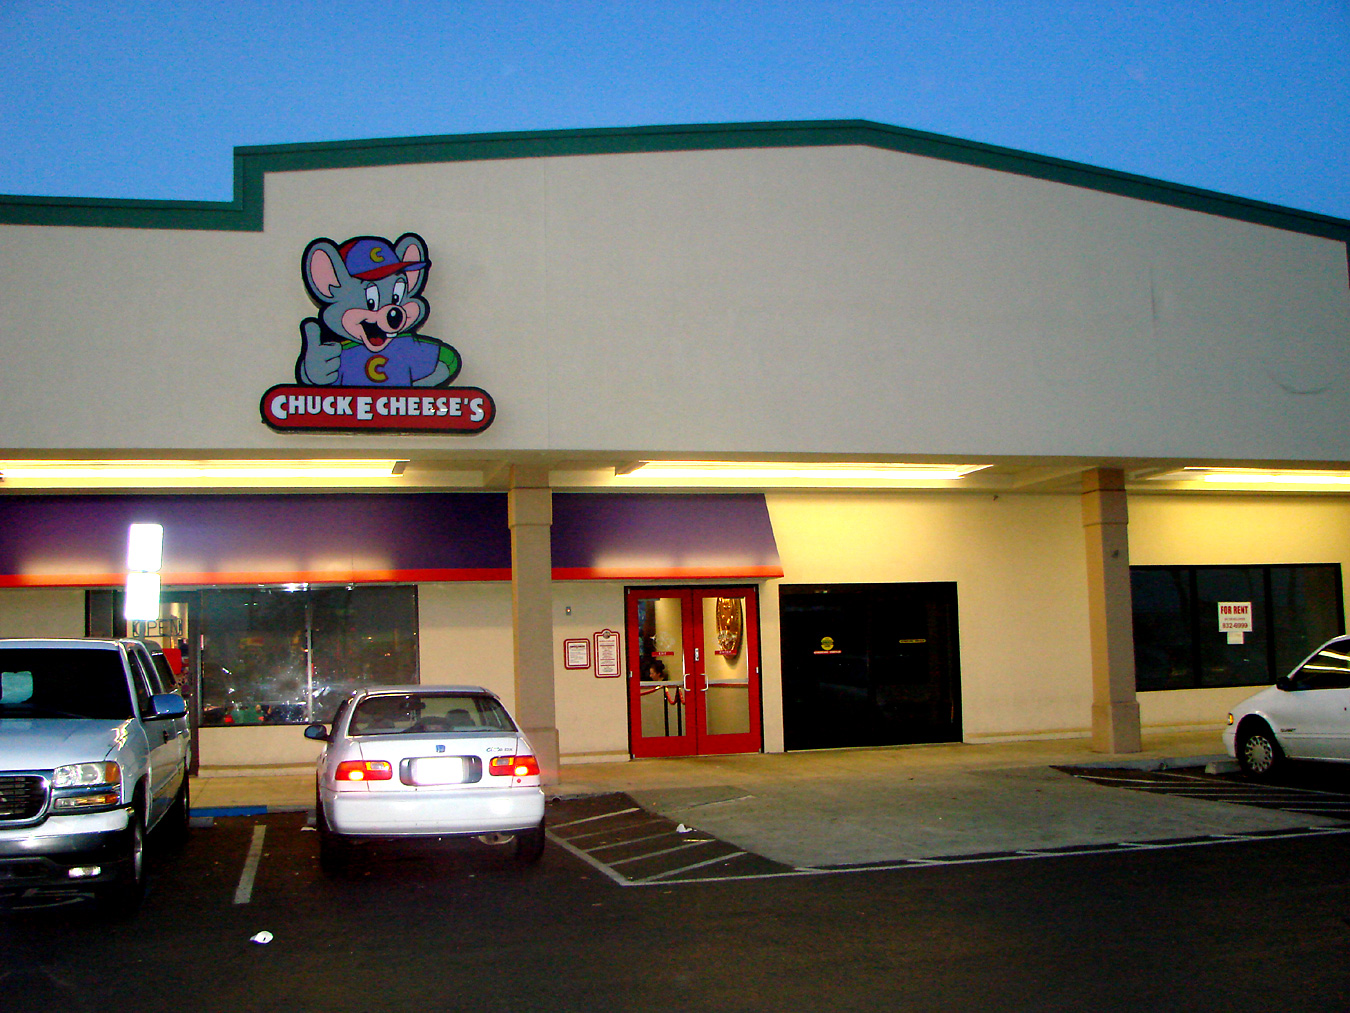 View the Chuck E Cheese's menu, read Chuck E Cheese's reviews, and get Chuck E Cheese's hours and directions. Have no fear; we've compiled a list of all the HI Chuck E Cheese's locations. Simply click on the Chuck E Cheese's location below to find out where it /5(11).